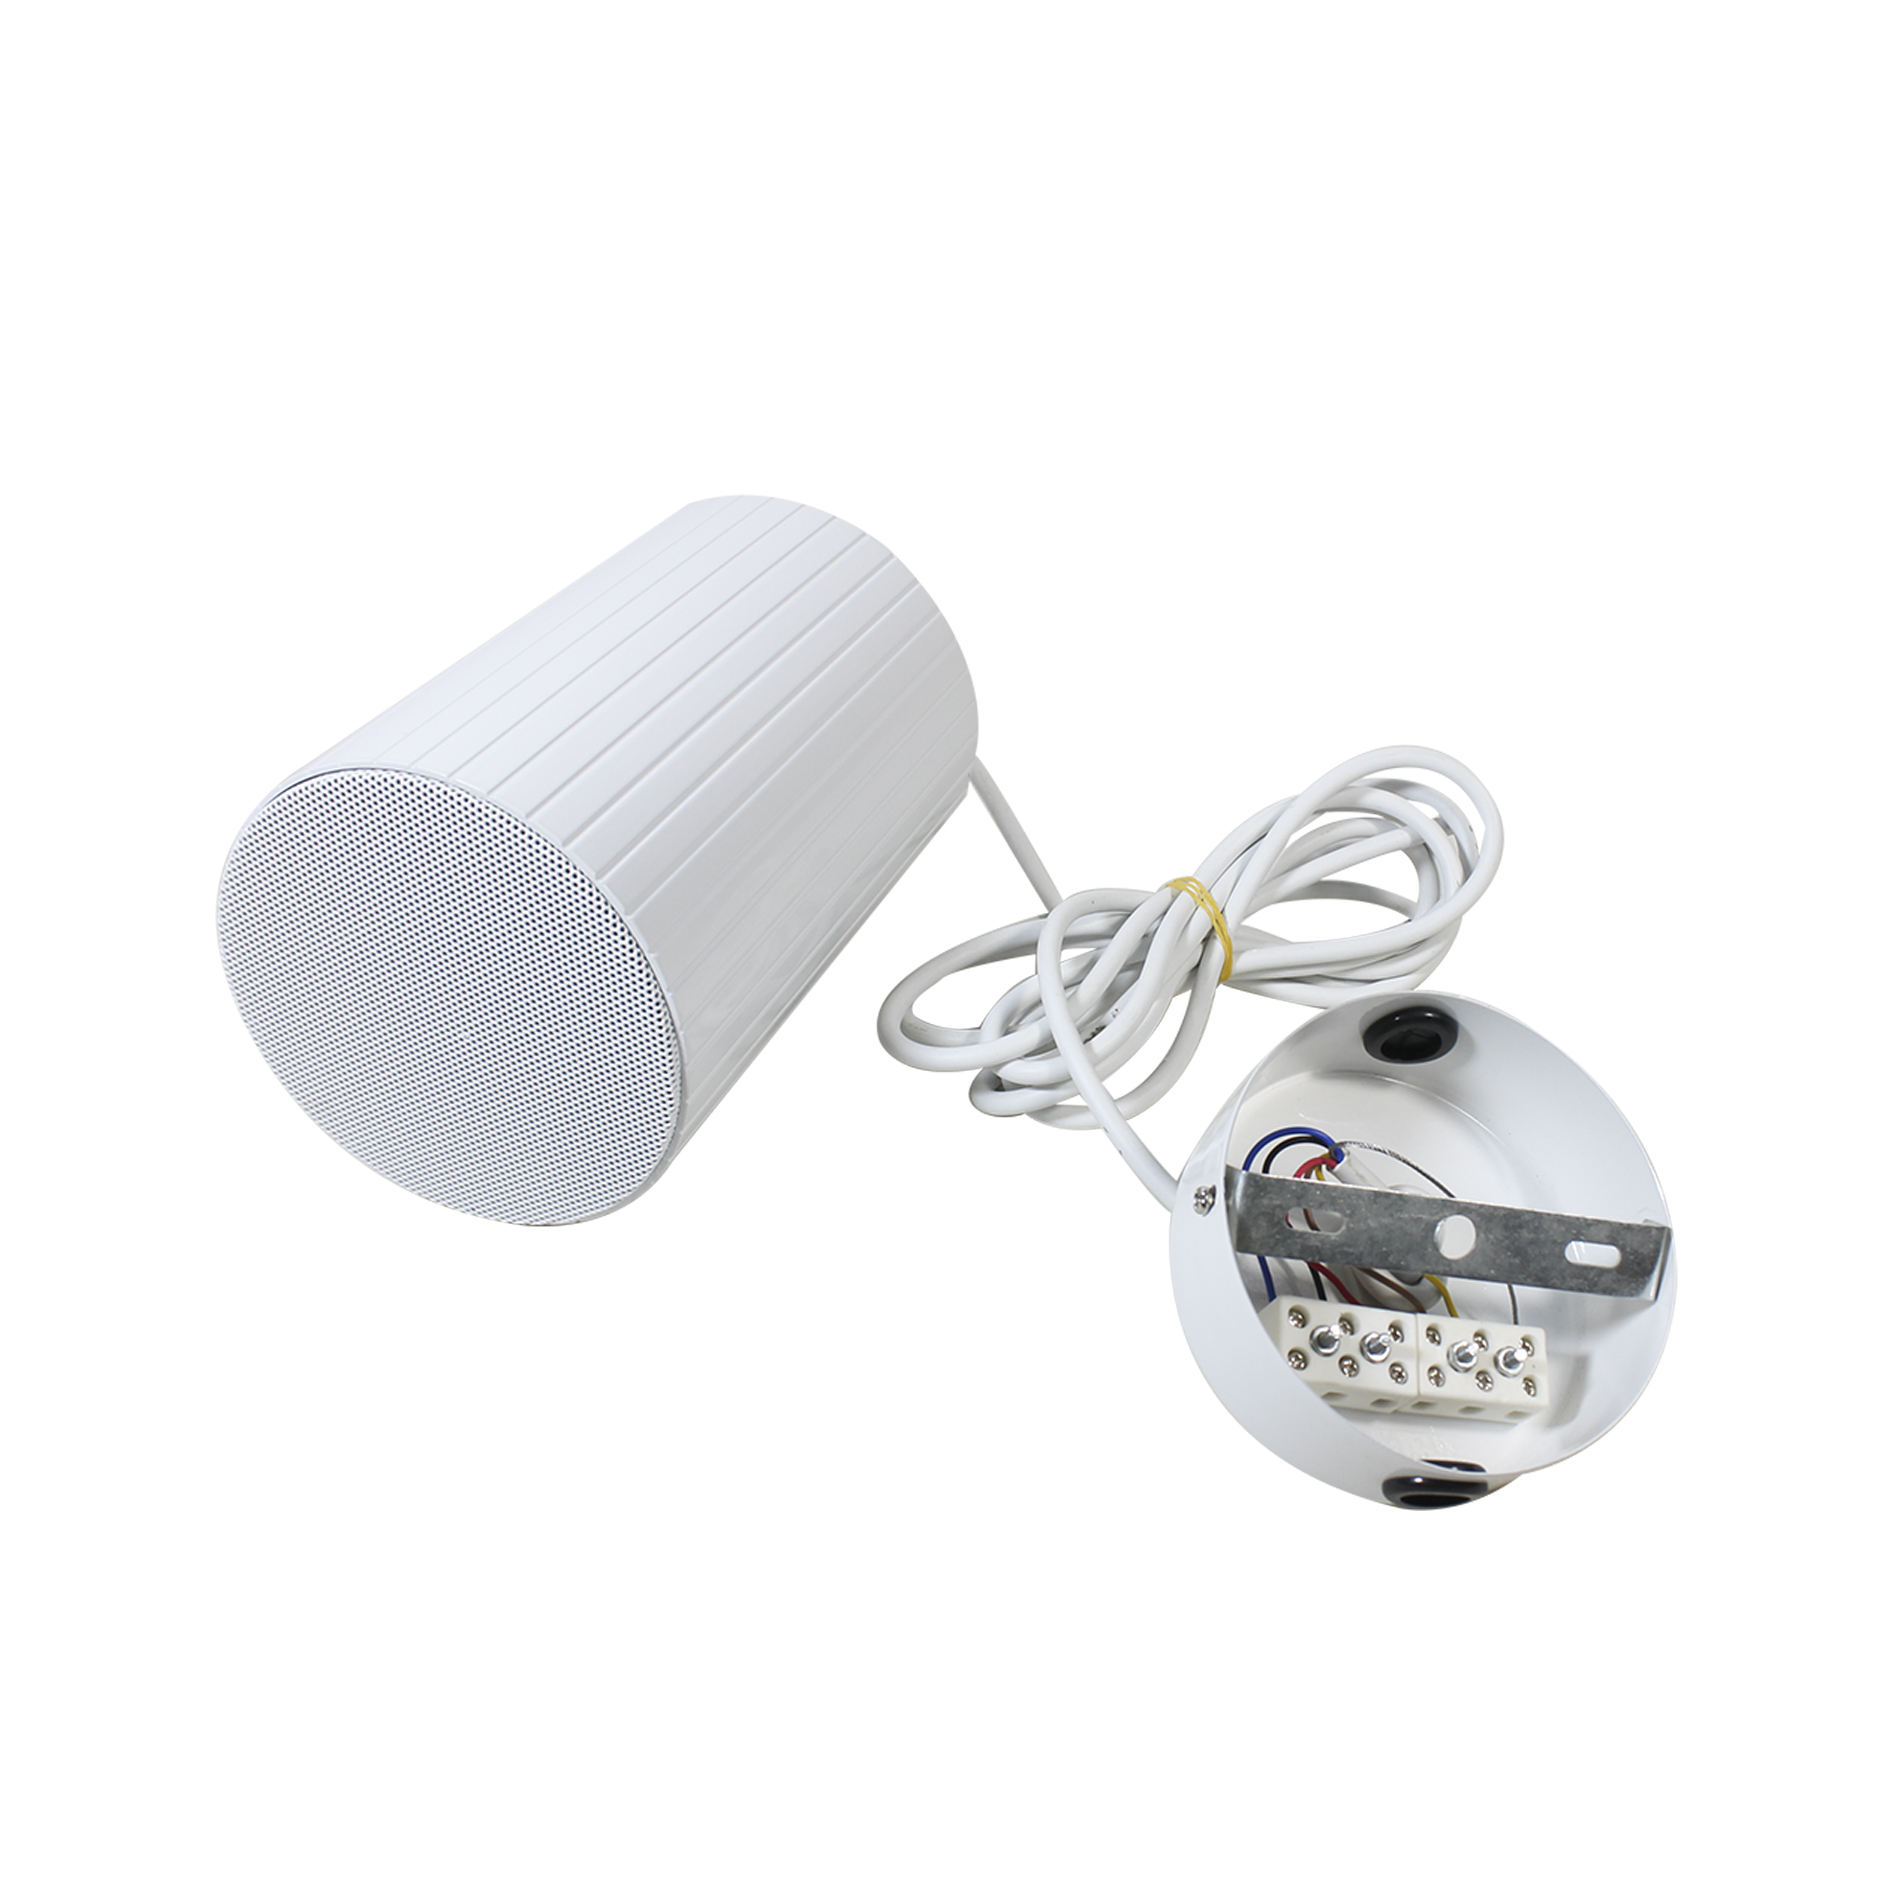 EN54 certificated PA system weather proof Aluminum 5 inch 20W full range Hanging projector speaker